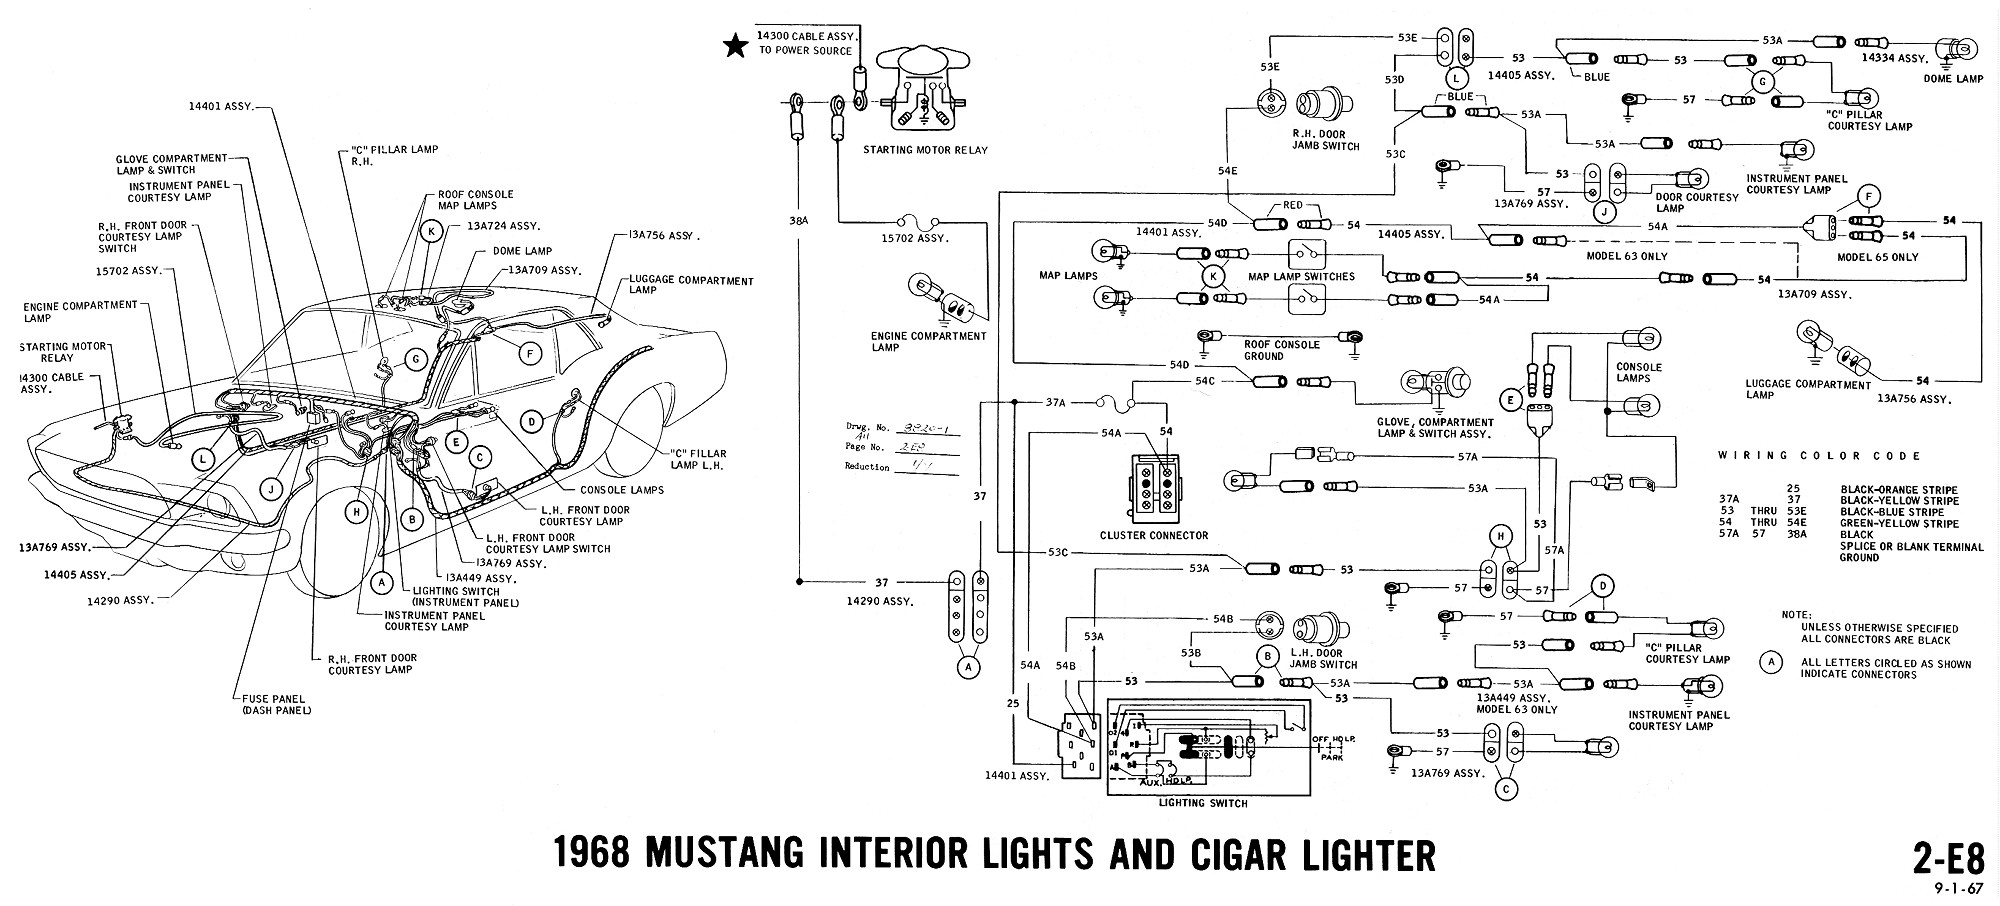 1968 mustang wiring diagram interior lights cigar lighter 68 mustang wiring diagram 1969 mustang wiring diagram online 67 mustang wiring harness at crackthecode.co